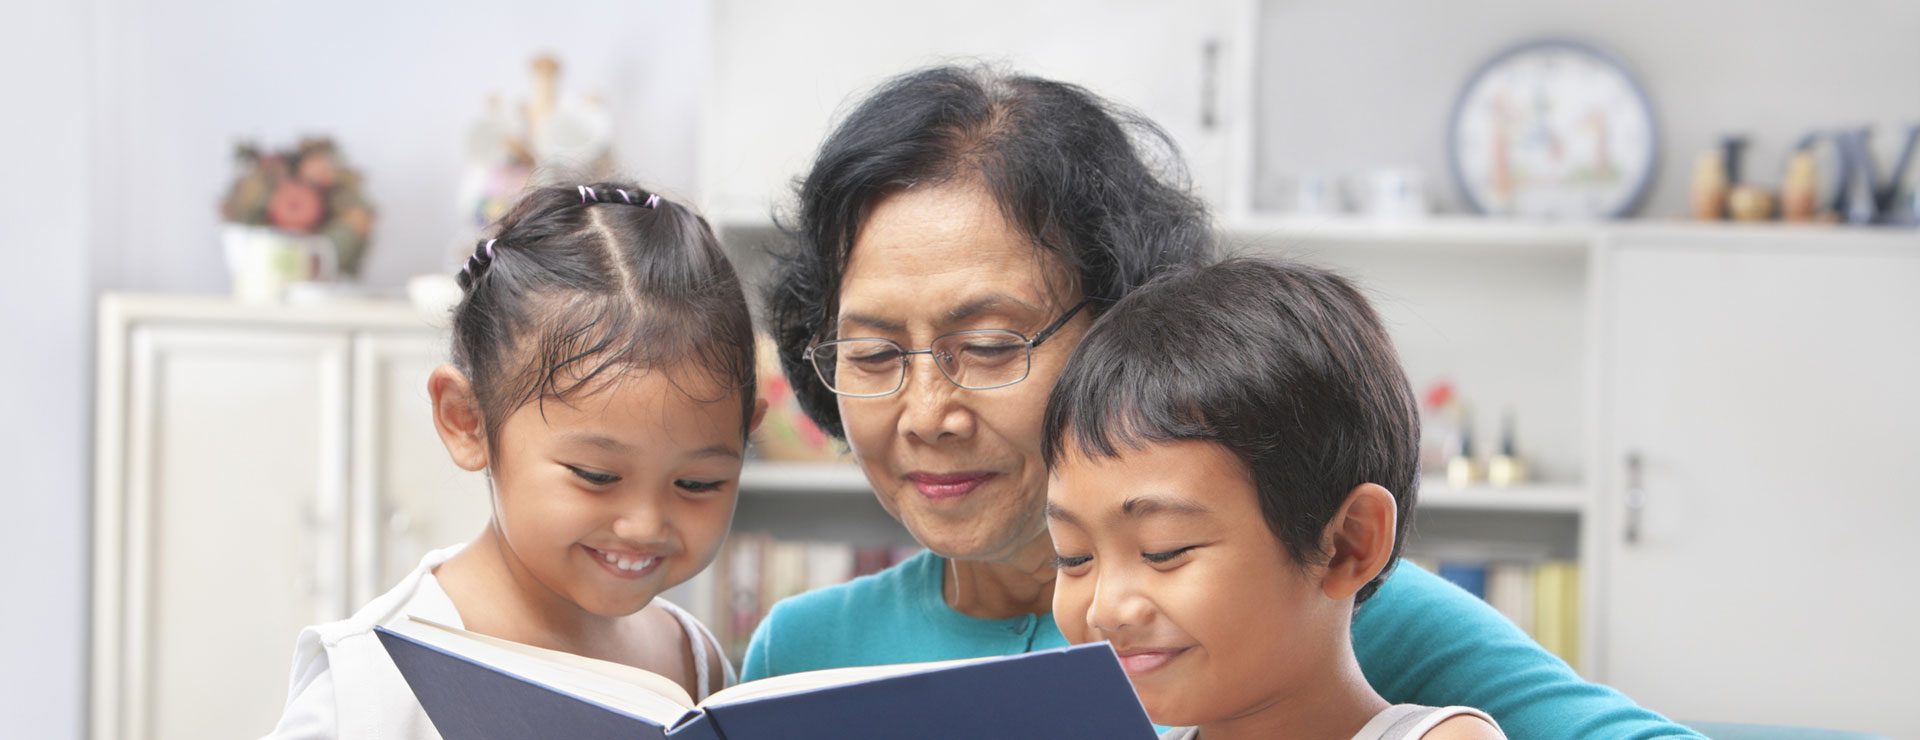 A grandmother with glasses reads to her grandchildren